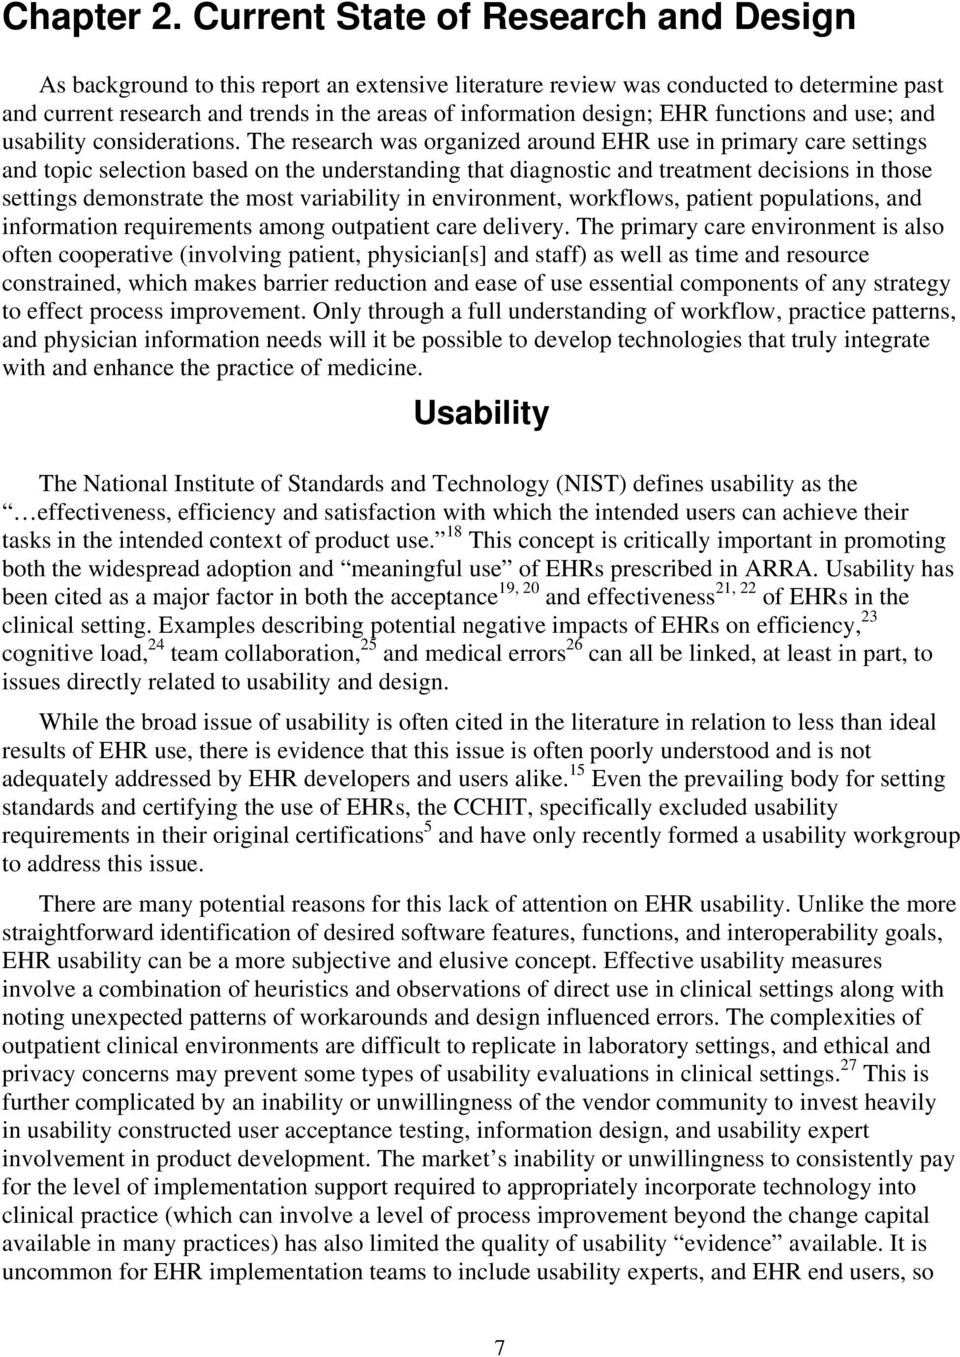 EHR functions and use; and usability considerations.